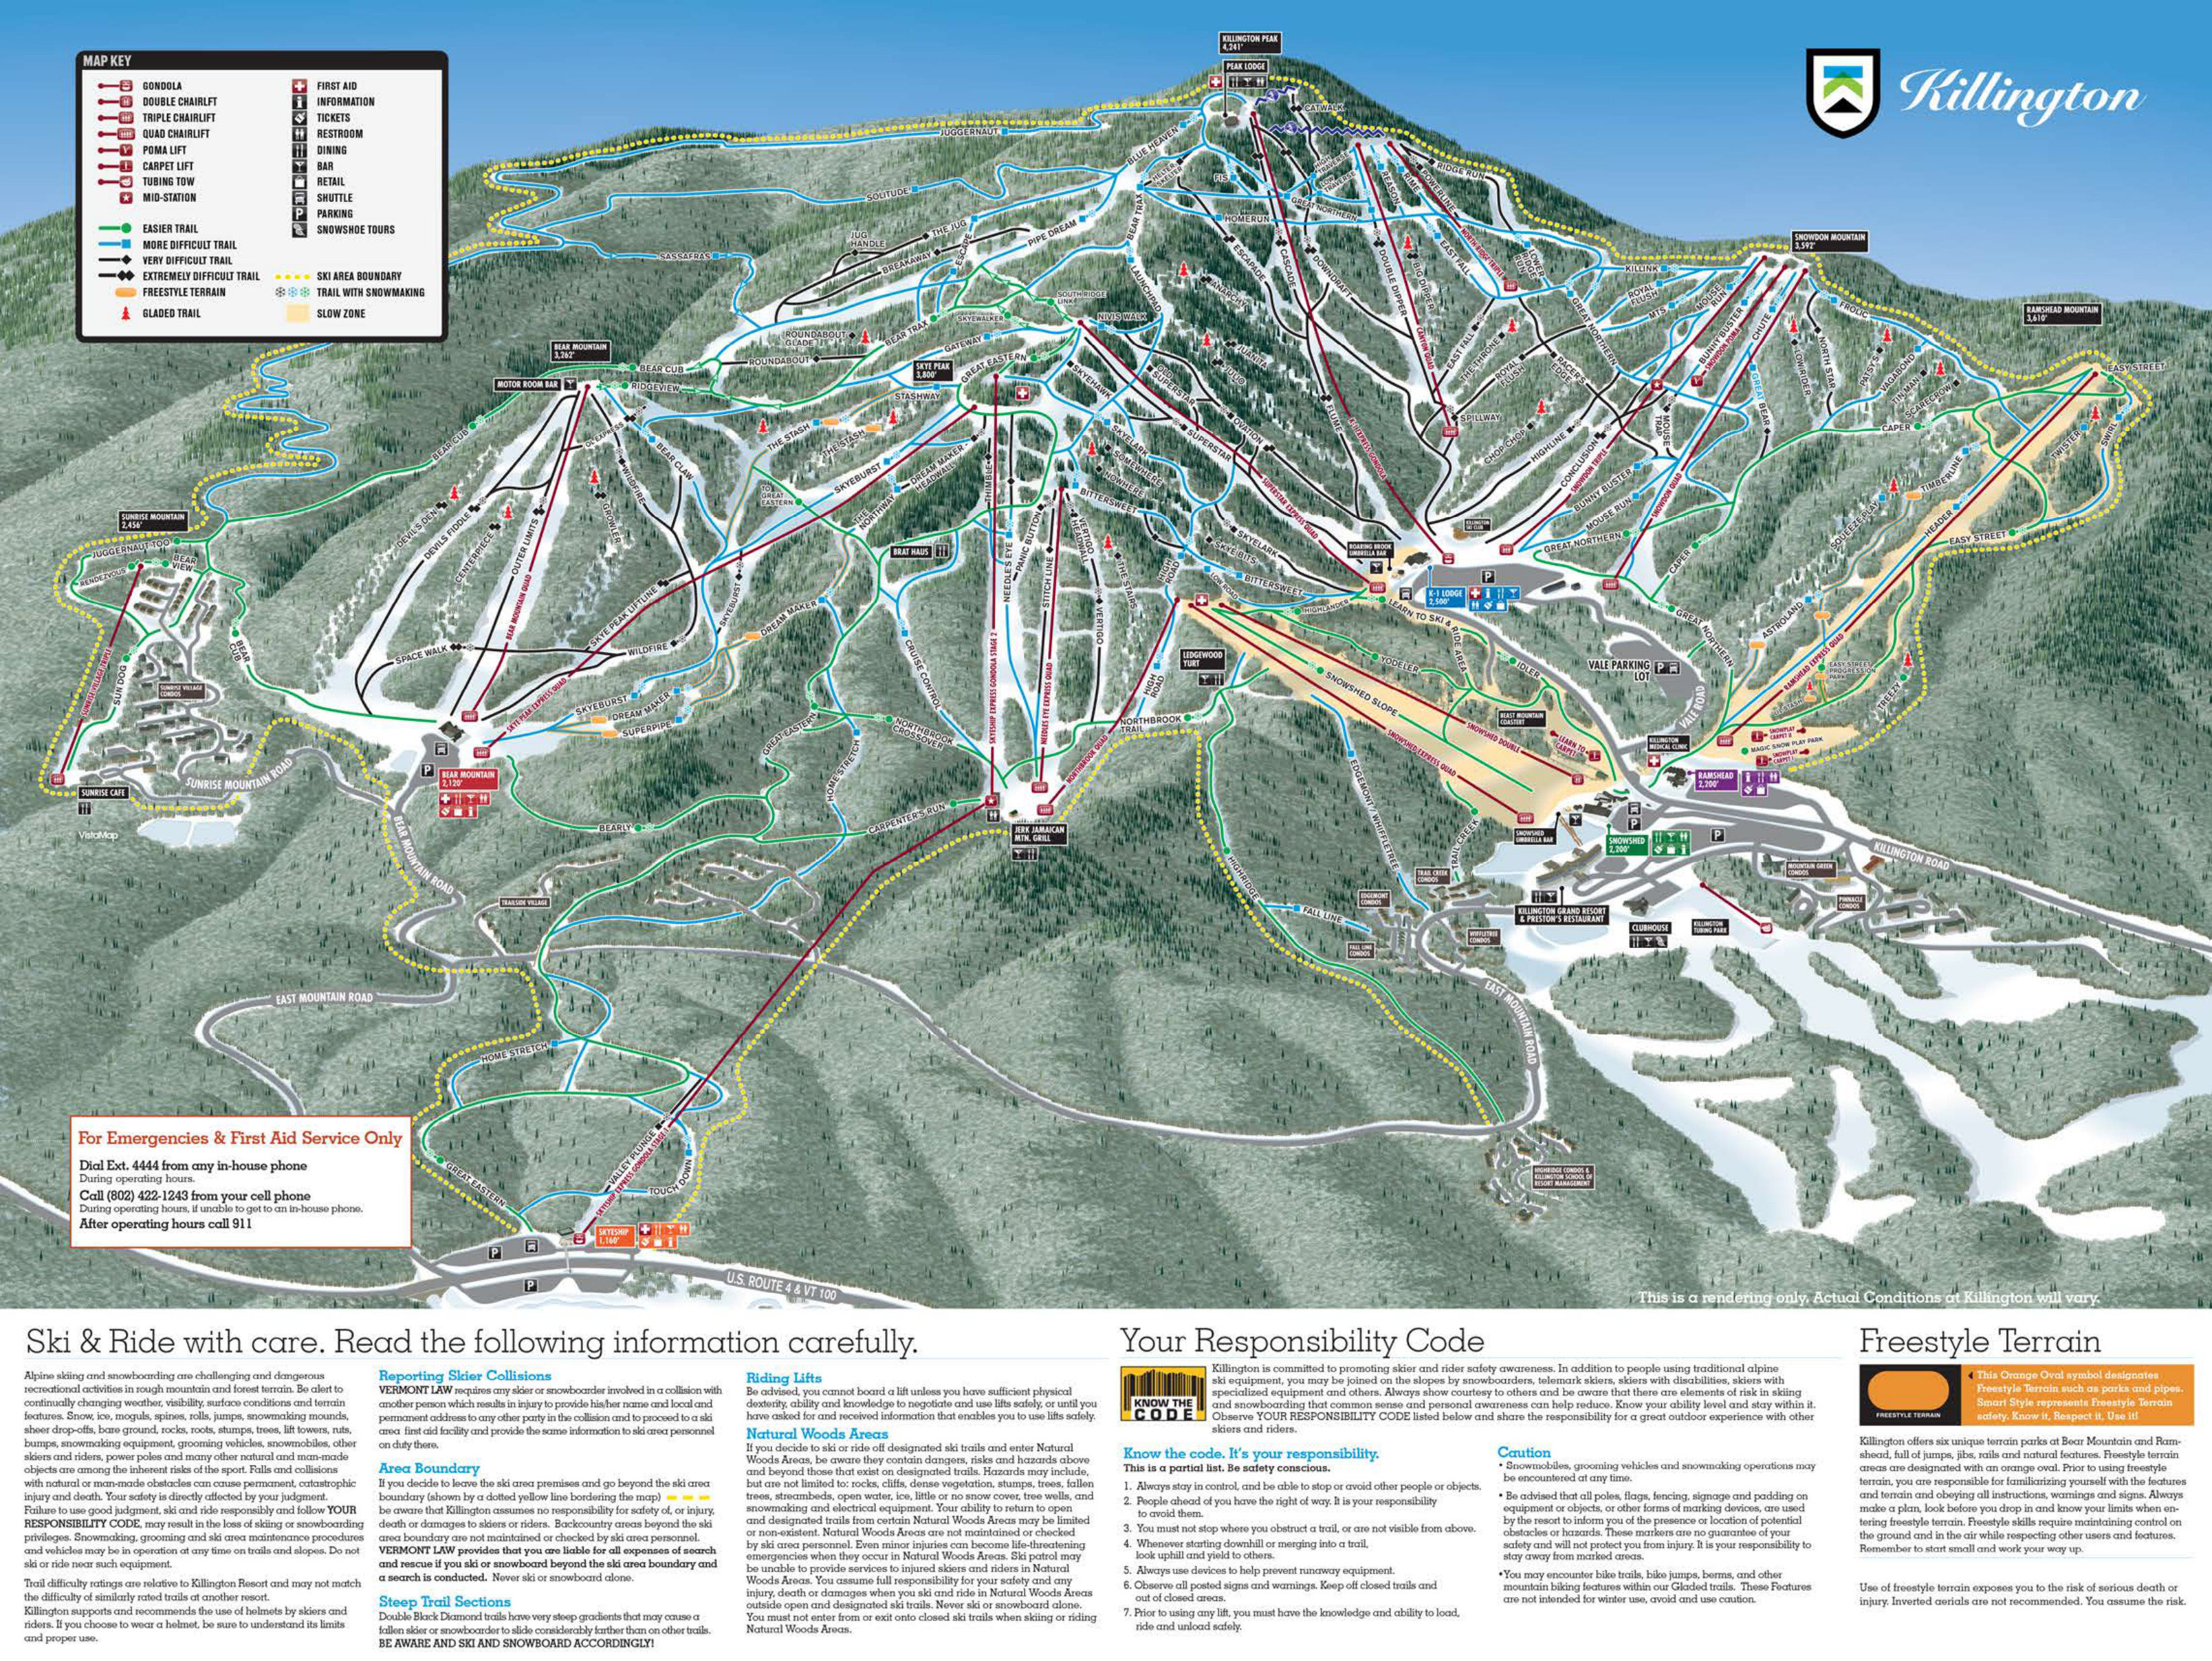 Killington - SkiMap.org on ski beech map, pico map, jay peak map, grand targhee map, dorset map, smugglers notch map, boyne highlands map, cambridge map, rupert map, wallingford map, hinesburg town forest map, sipapu map, vermont map, woodstock map, ludlow map, brownsville map, essex map, salisbury map, albany map, steamboat map,